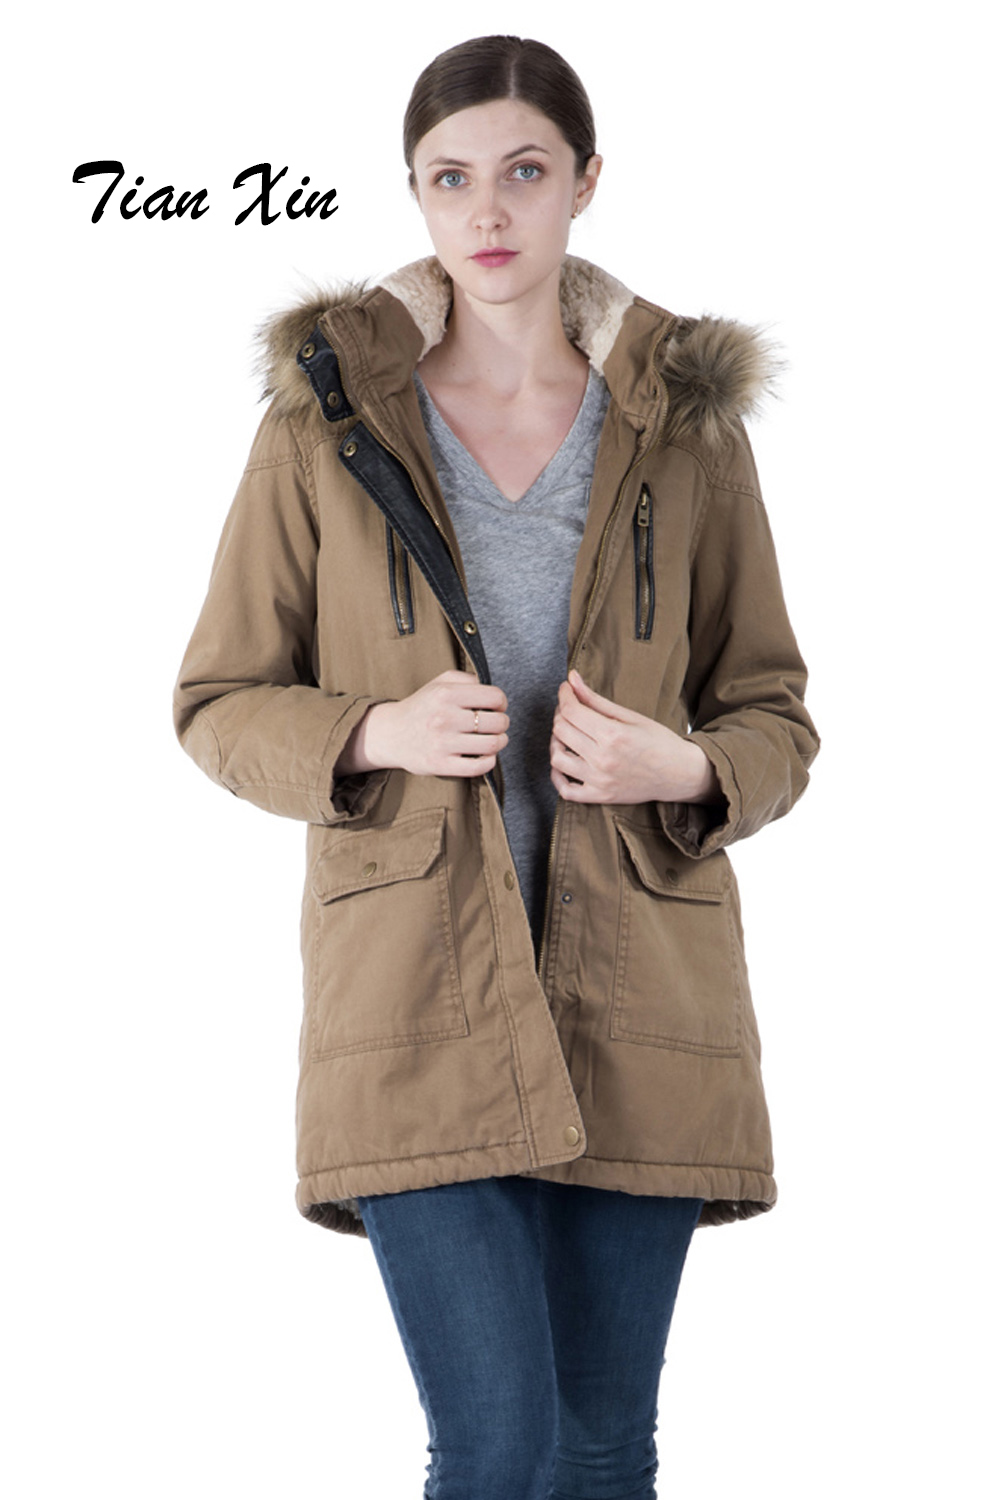 Women Winter Outwear Coat Hooded Fleece Lined Zipper Hooded Parka Flap Pocket Long Sleeves Cotton Parka купить